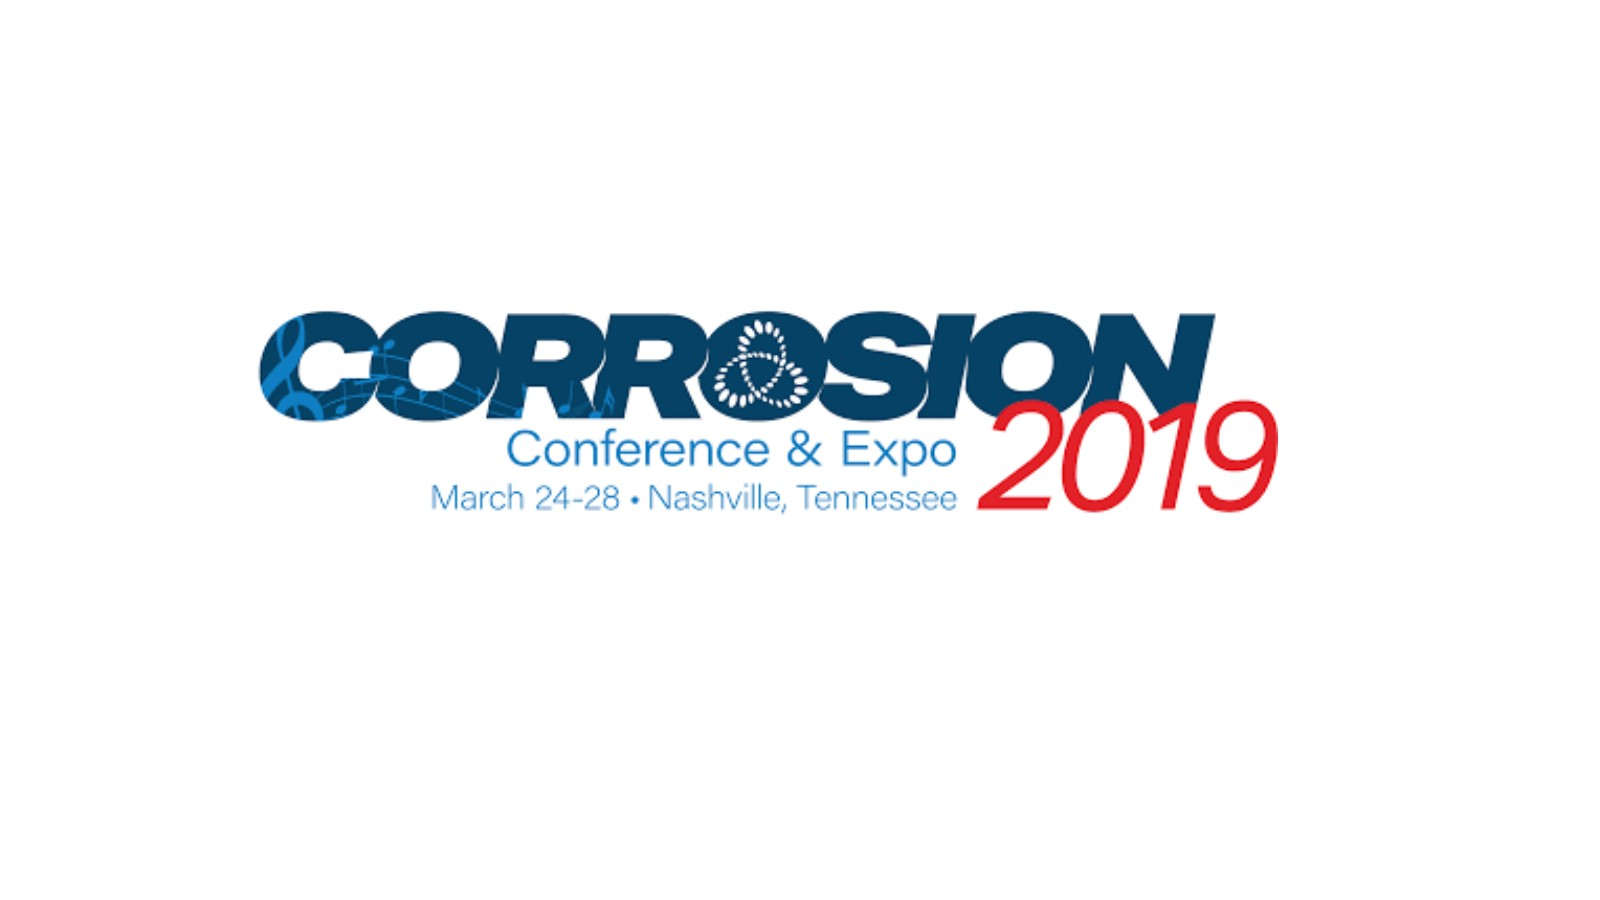 - CORROSION is the world's largest conference and exposition on corrosion.Representatives from our Global Sales Team joined more than 6,000 scientists, researchers, engineers, technicians, coatings inspectors and contractors, educators and students, as well as business executives and asset owners from more than 60 countries.